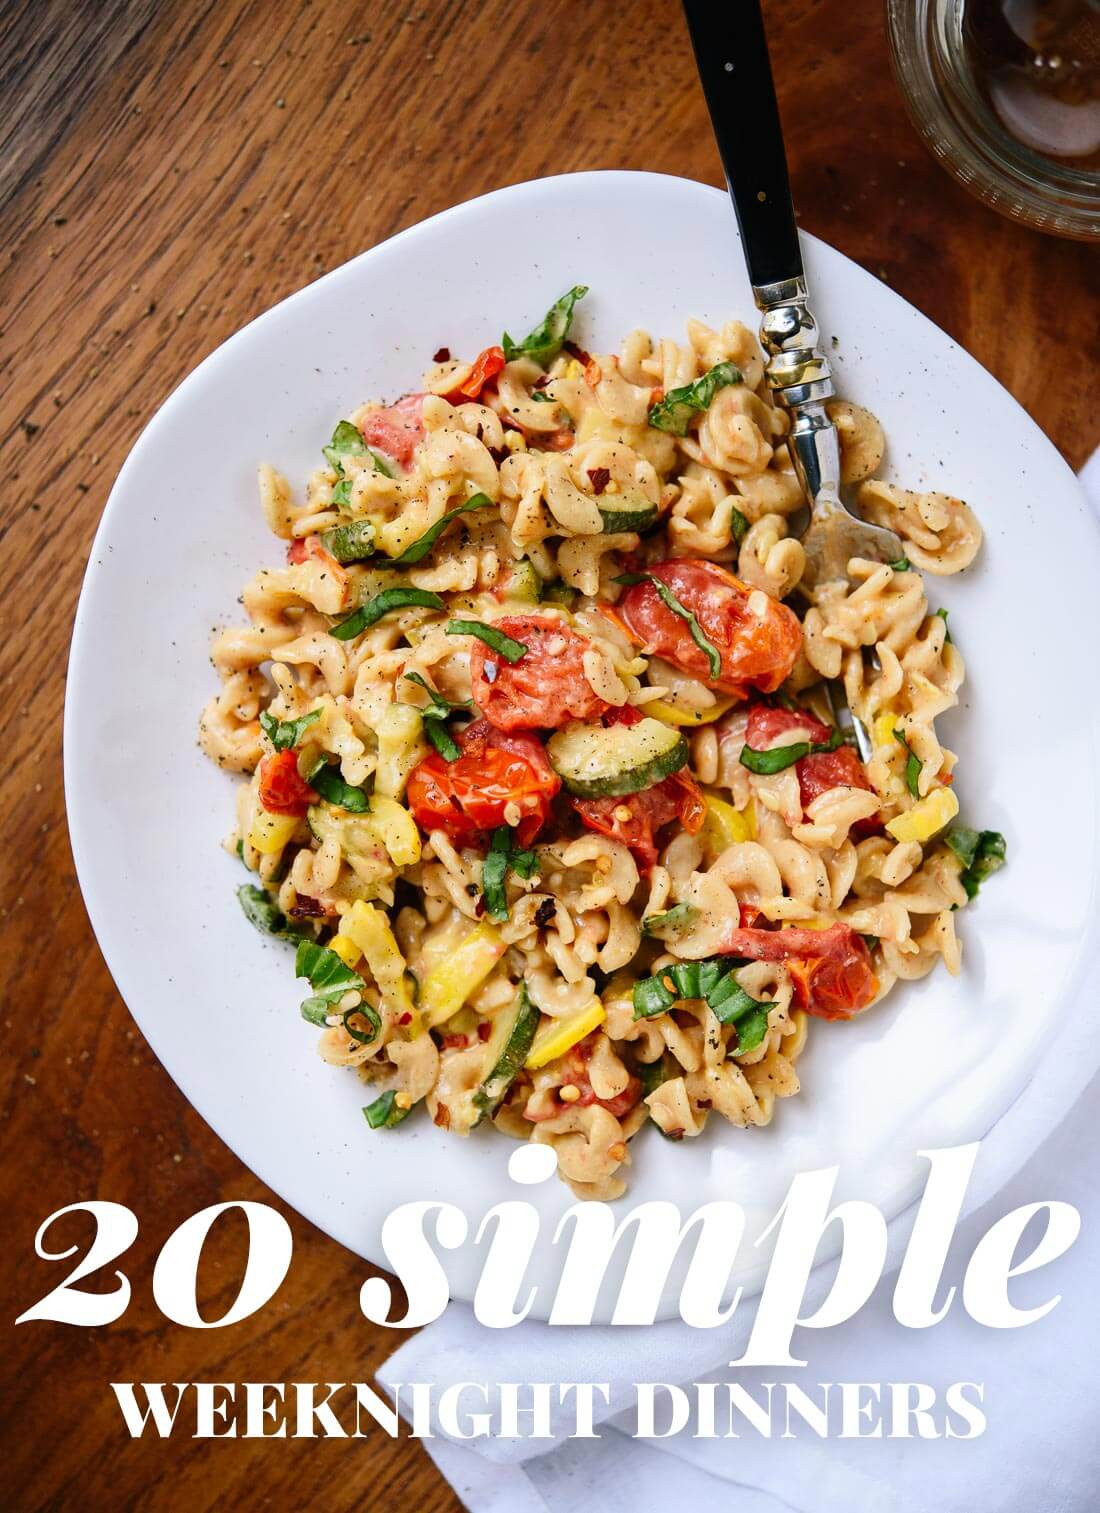 Vegetarian Dinner Recipes  20 Simple Ve arian Dinner Recipes Cookie and Kate